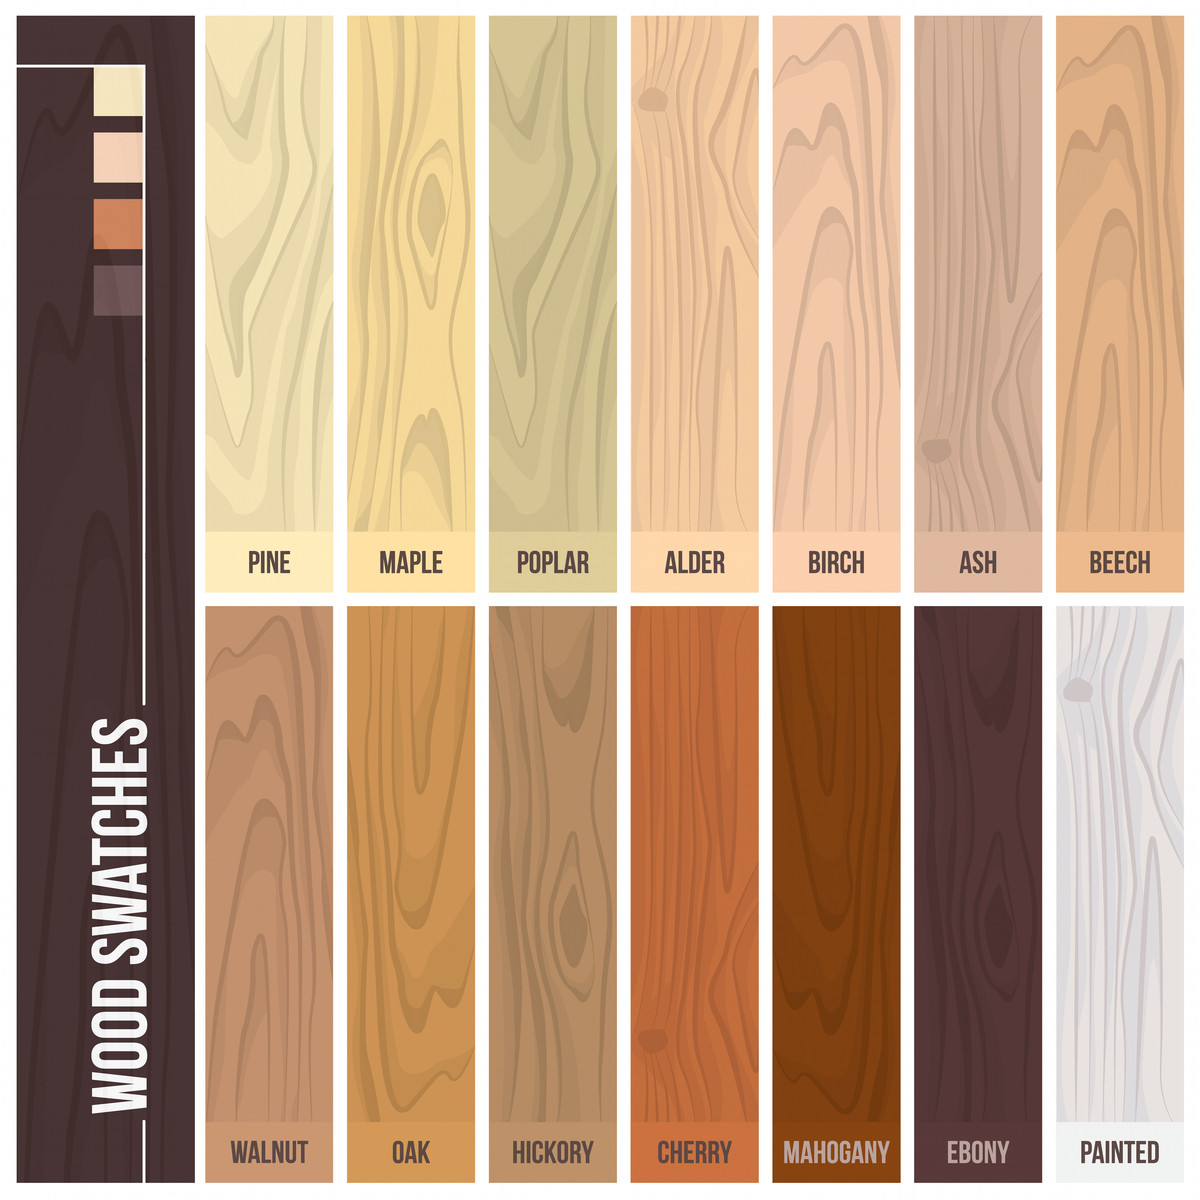 hardwood flooring types pros and cons of 12 types of hardwood flooring species styles edging dimensions inside types of hardwood flooring illustrated guide